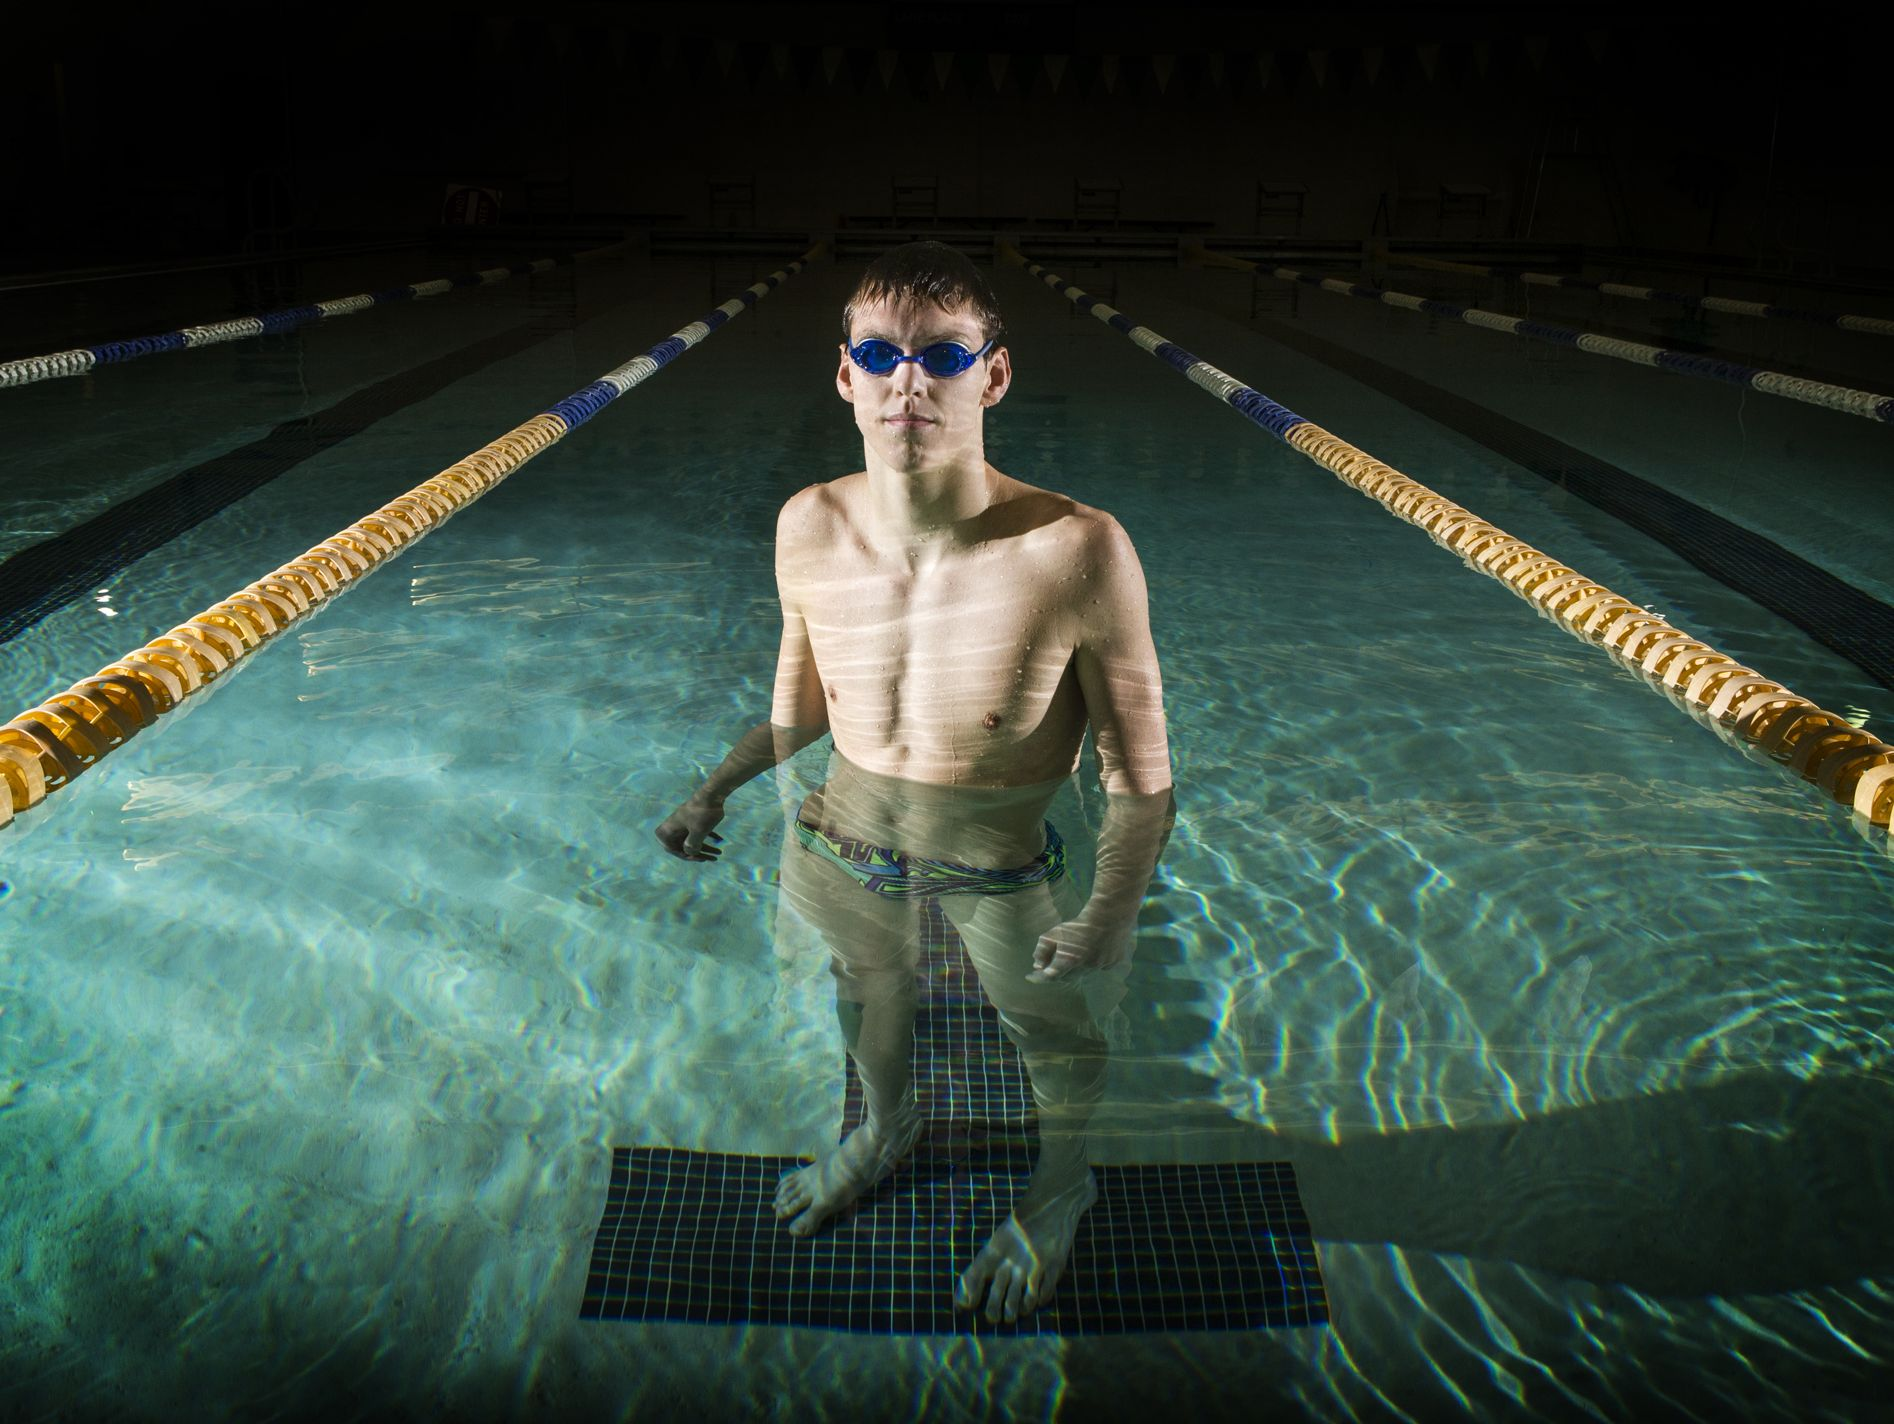 Mount Pleasant High School swimmer Bryce Cieko poses for a portrait in the swimming pool at P.S. du Pont Middle School in Wilmington on Wednesday afternoon.